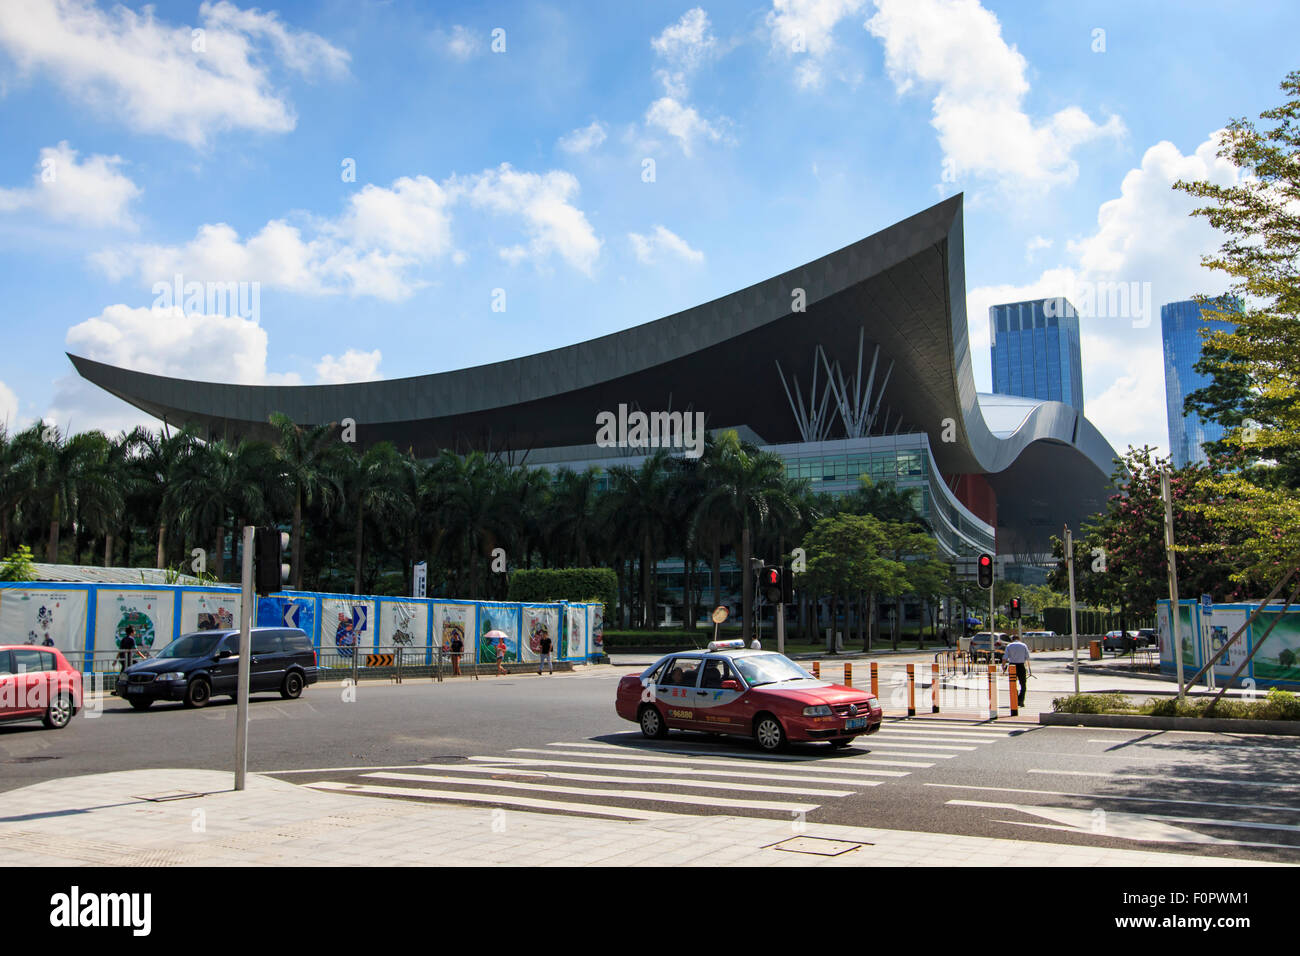 Shenzhen, China - August 19,2015: Shenzhen skyline as seen from the Stock Exchange building with the Civic Center - Stock Image